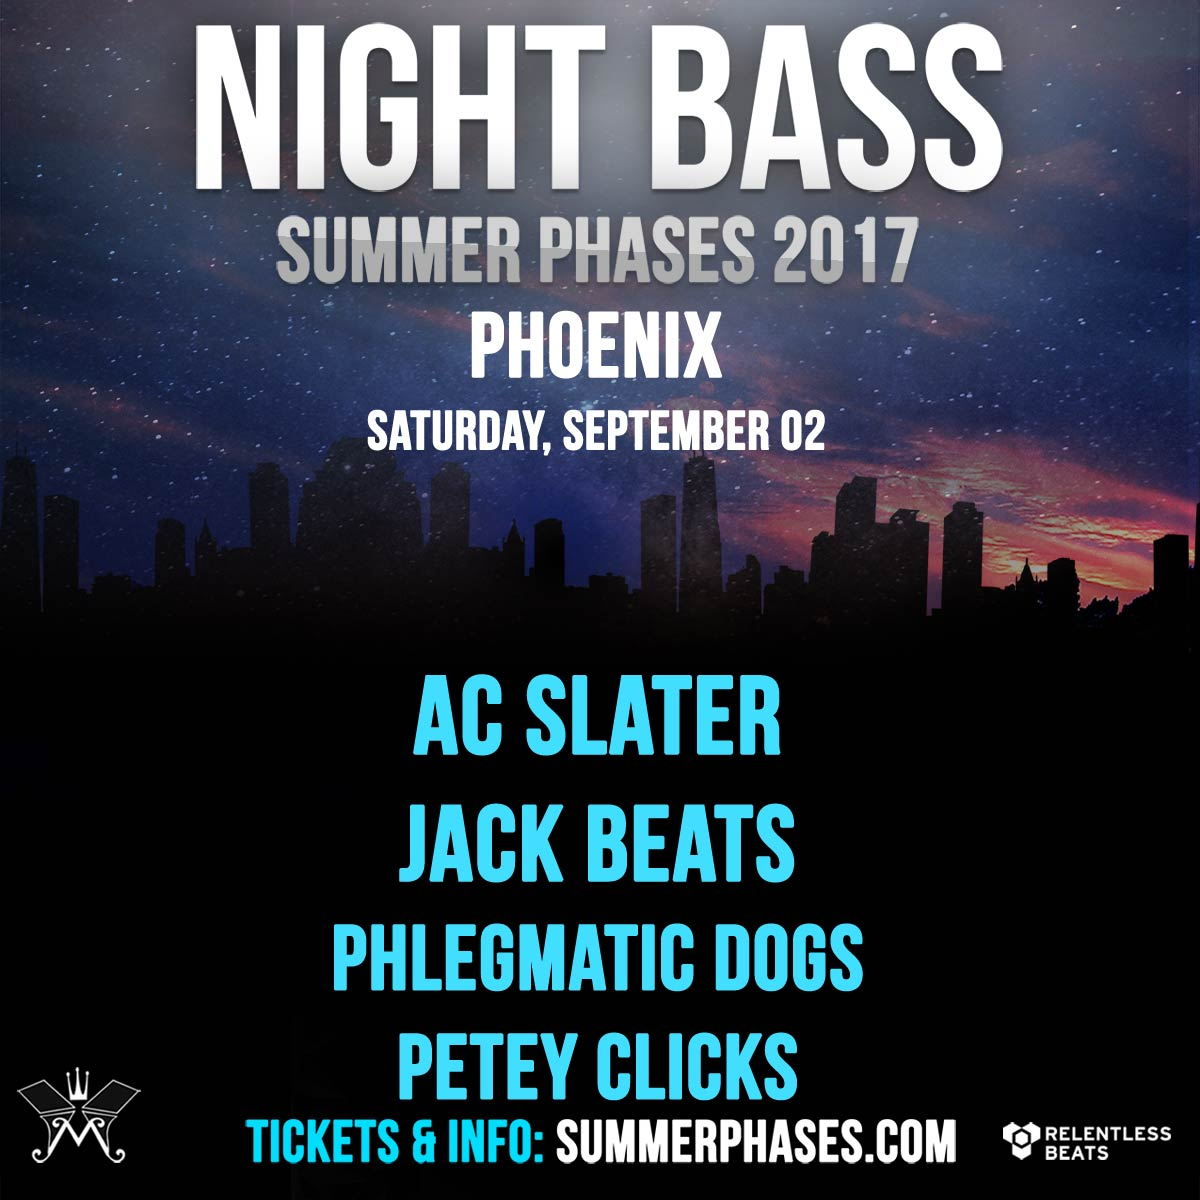 Flyer for Night Bass Summer Phases w/ AC Slater, Jack Beats, & More